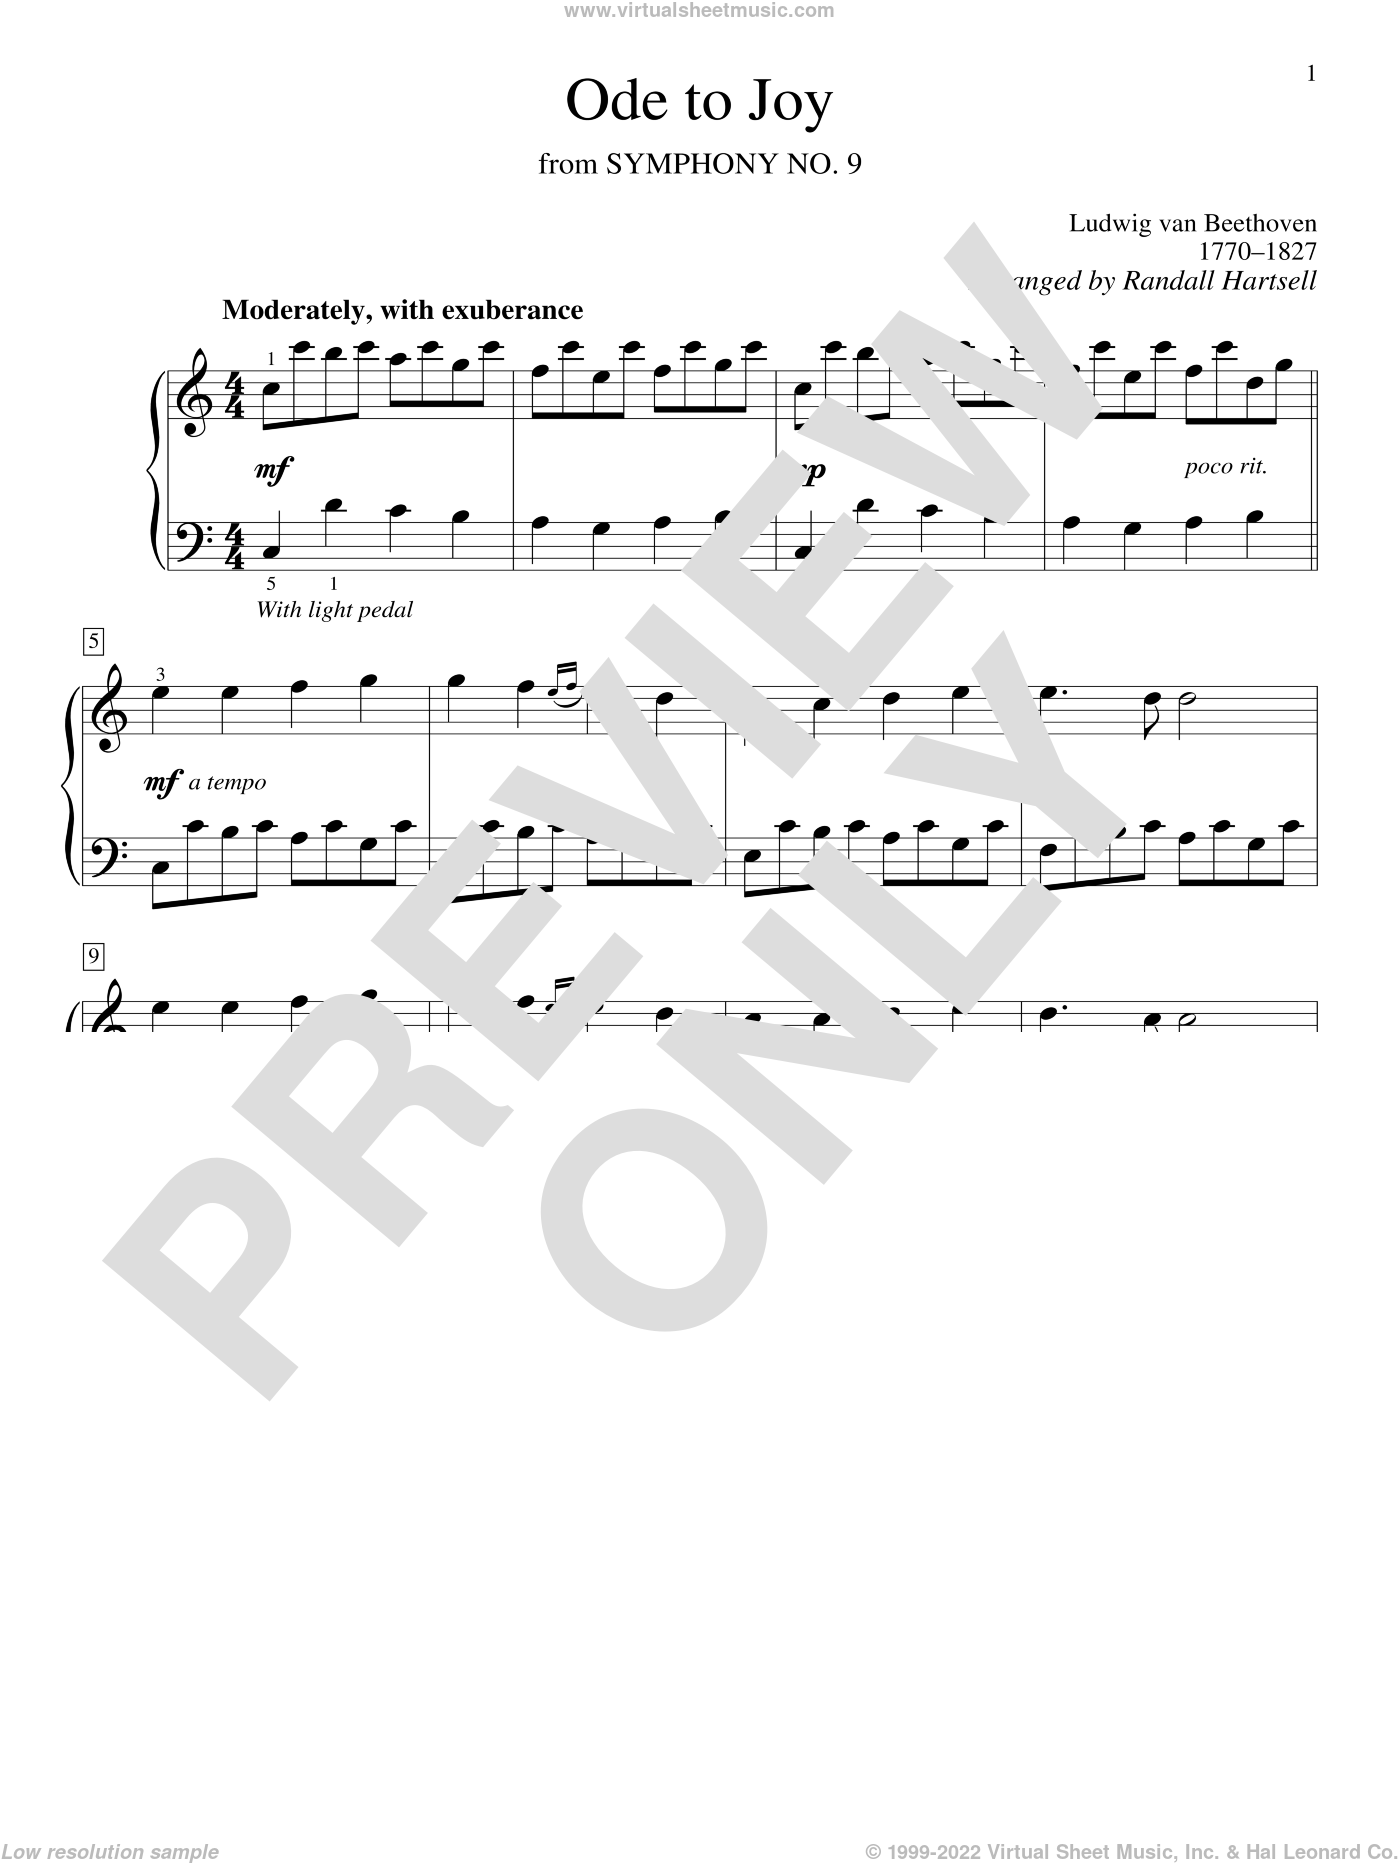 Ode To Joy sheet music for piano solo by Ludwig van Beethoven and Randall Hartsell, wedding score, intermediate skill level